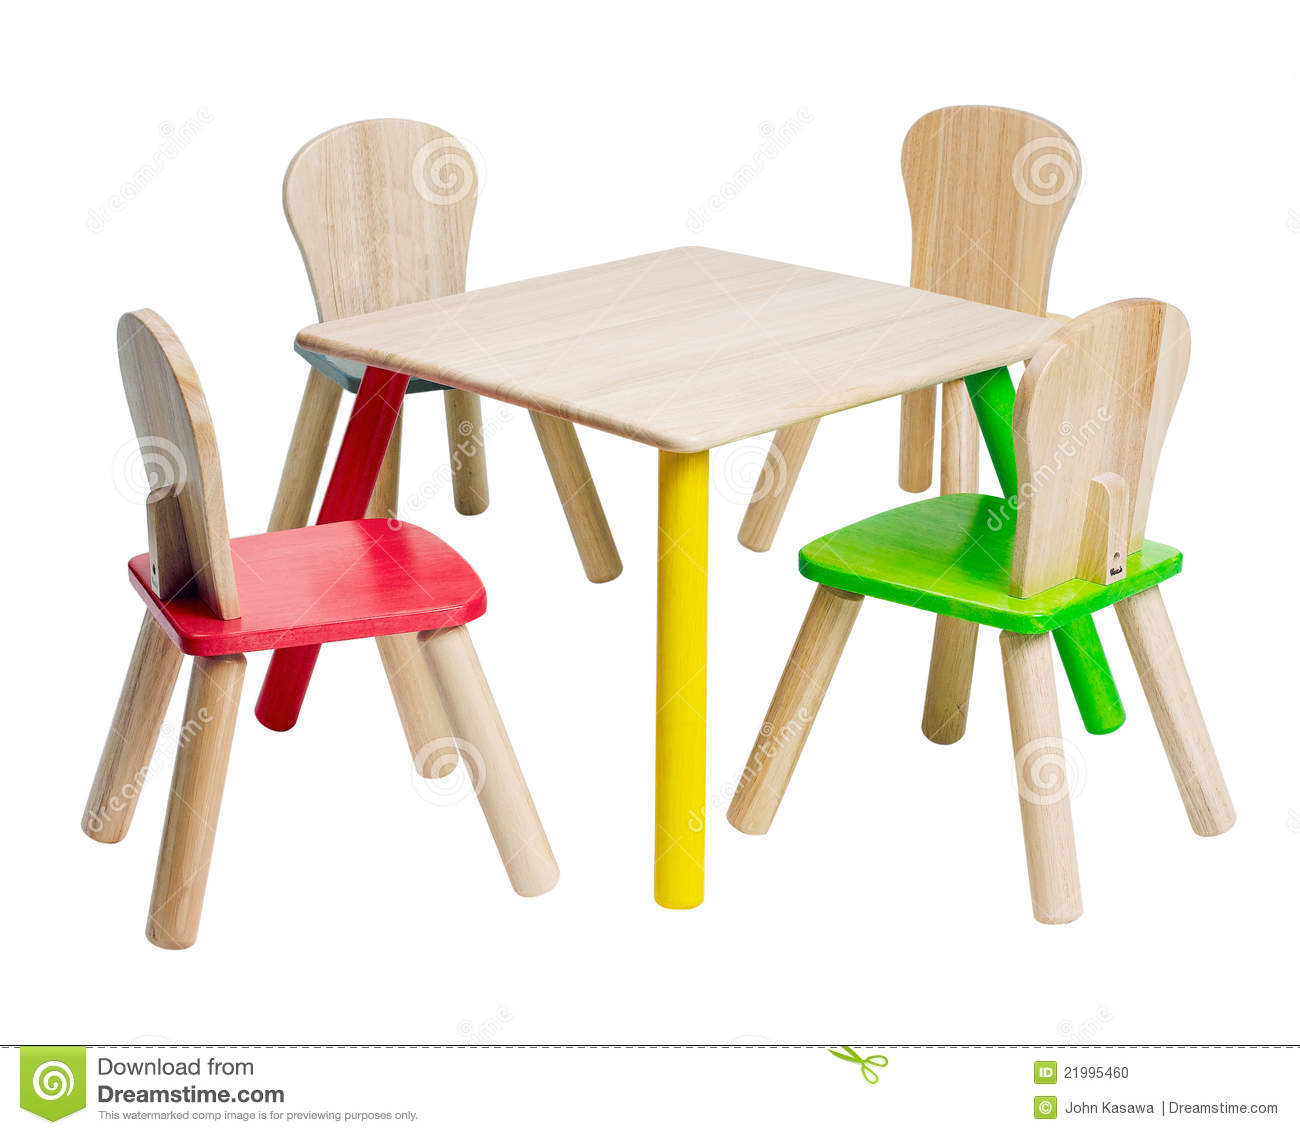 Colorful wooden table and chair toy for children to enjoy there ...